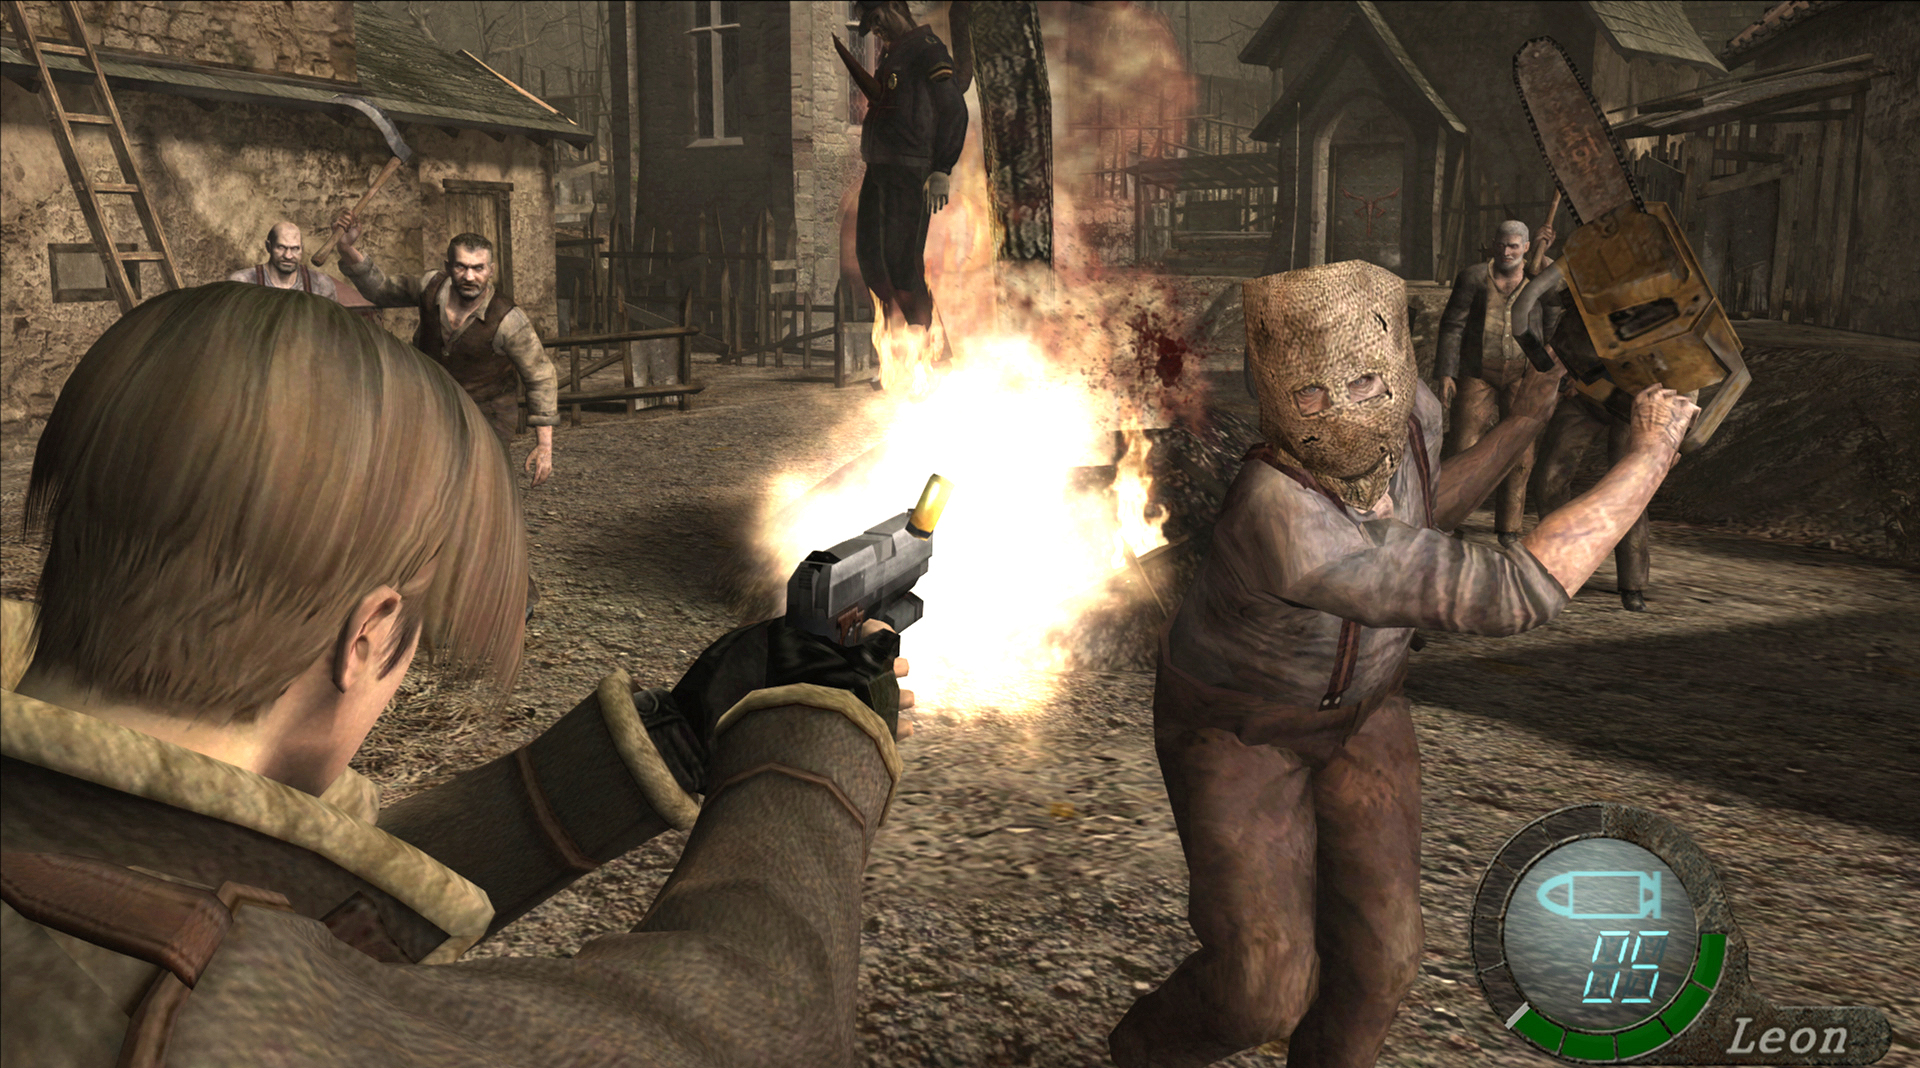 Yes Resident Evil 4 Is Pretty Dated These Days Usgamer